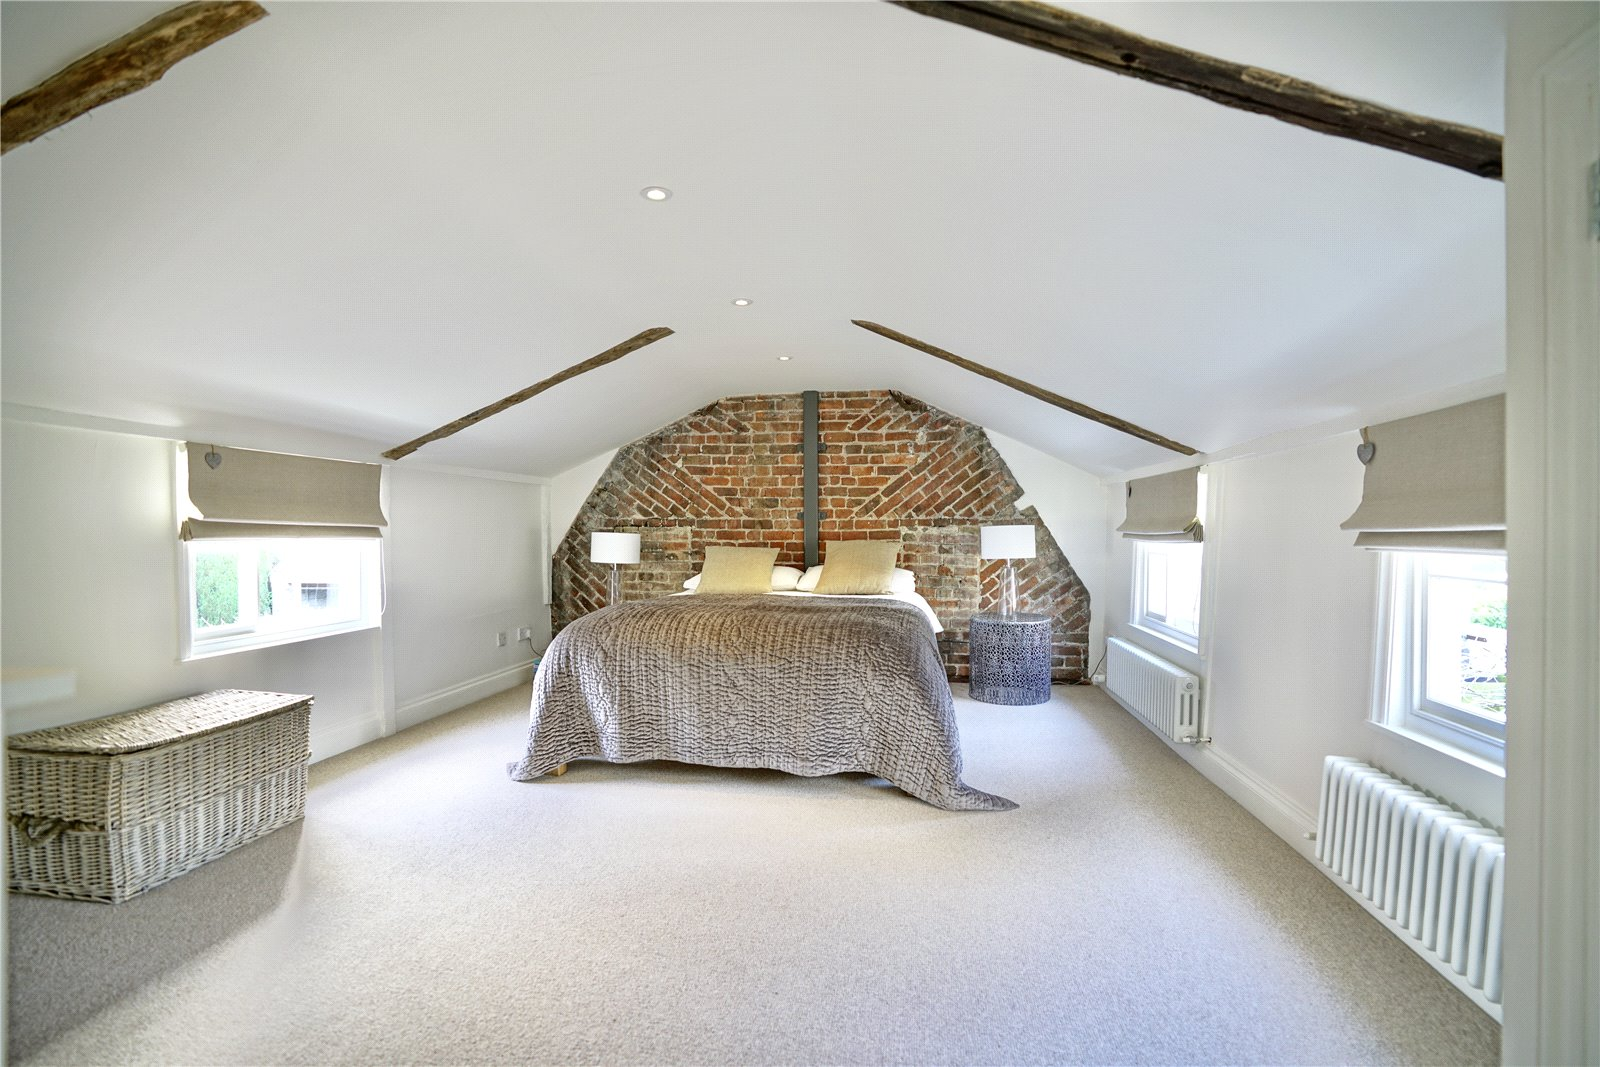 4 bed house for sale in Church Street, Buckden, PE19